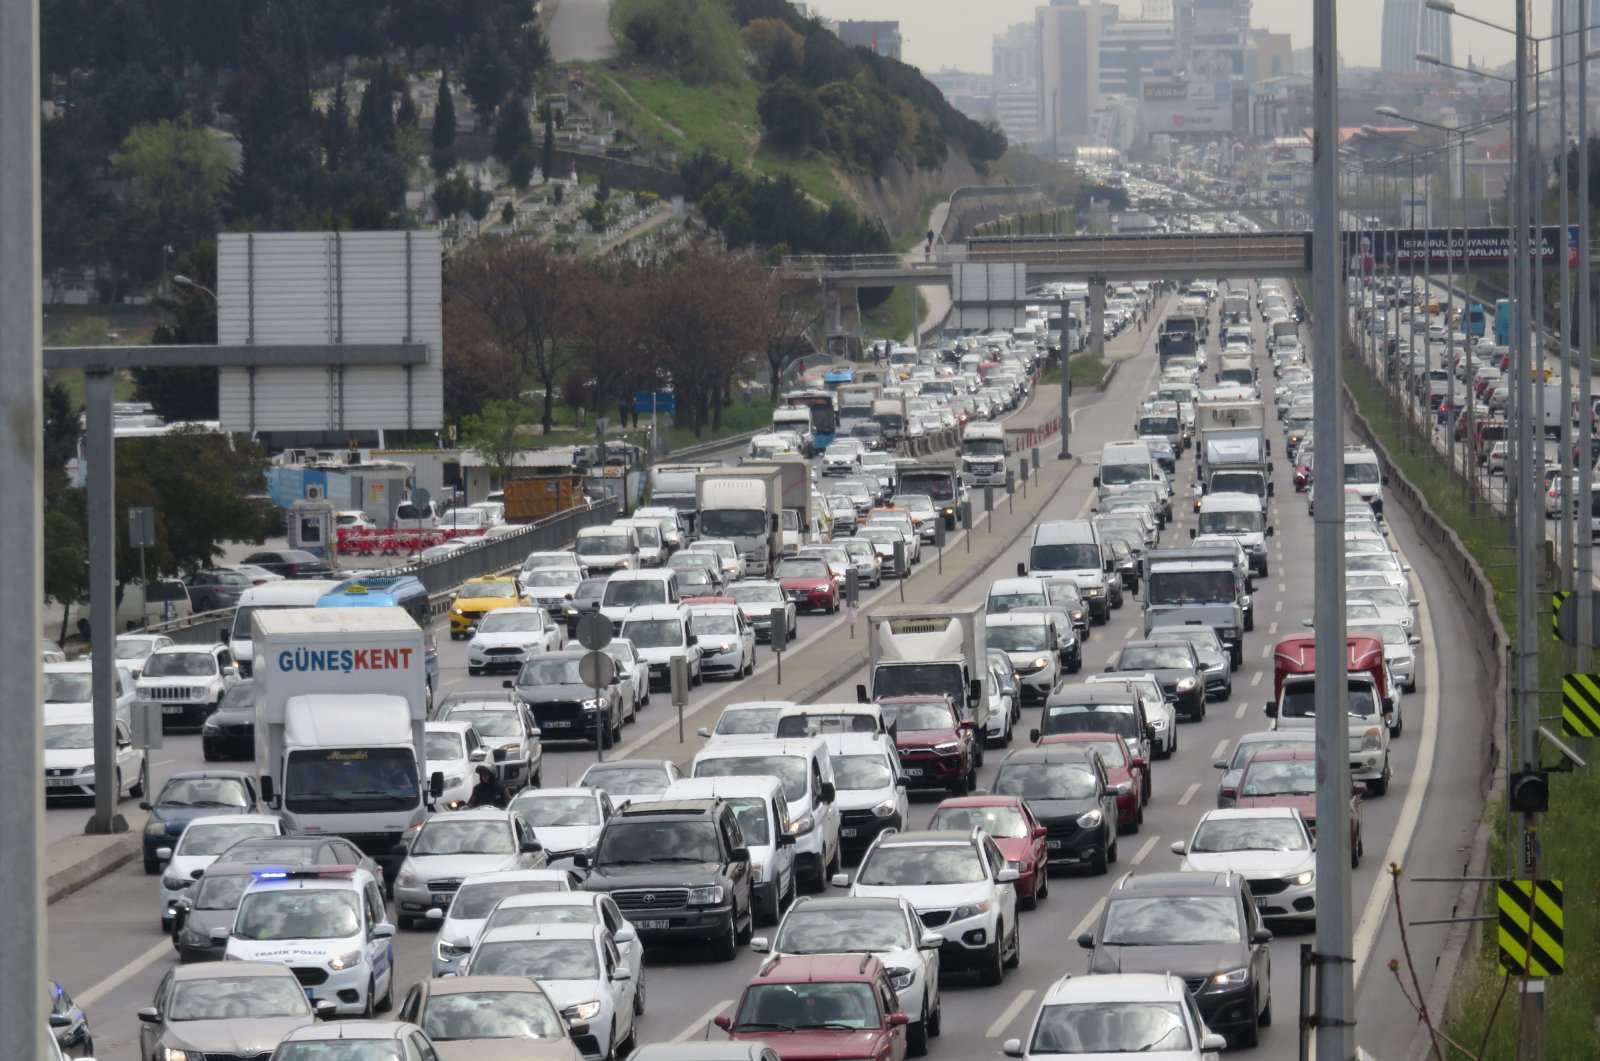 A view of the Kadıköy section of the D-100 highway one day before lockdown, in Istanbul, Turkey, April 28, 2021. (DHA PHOTO)